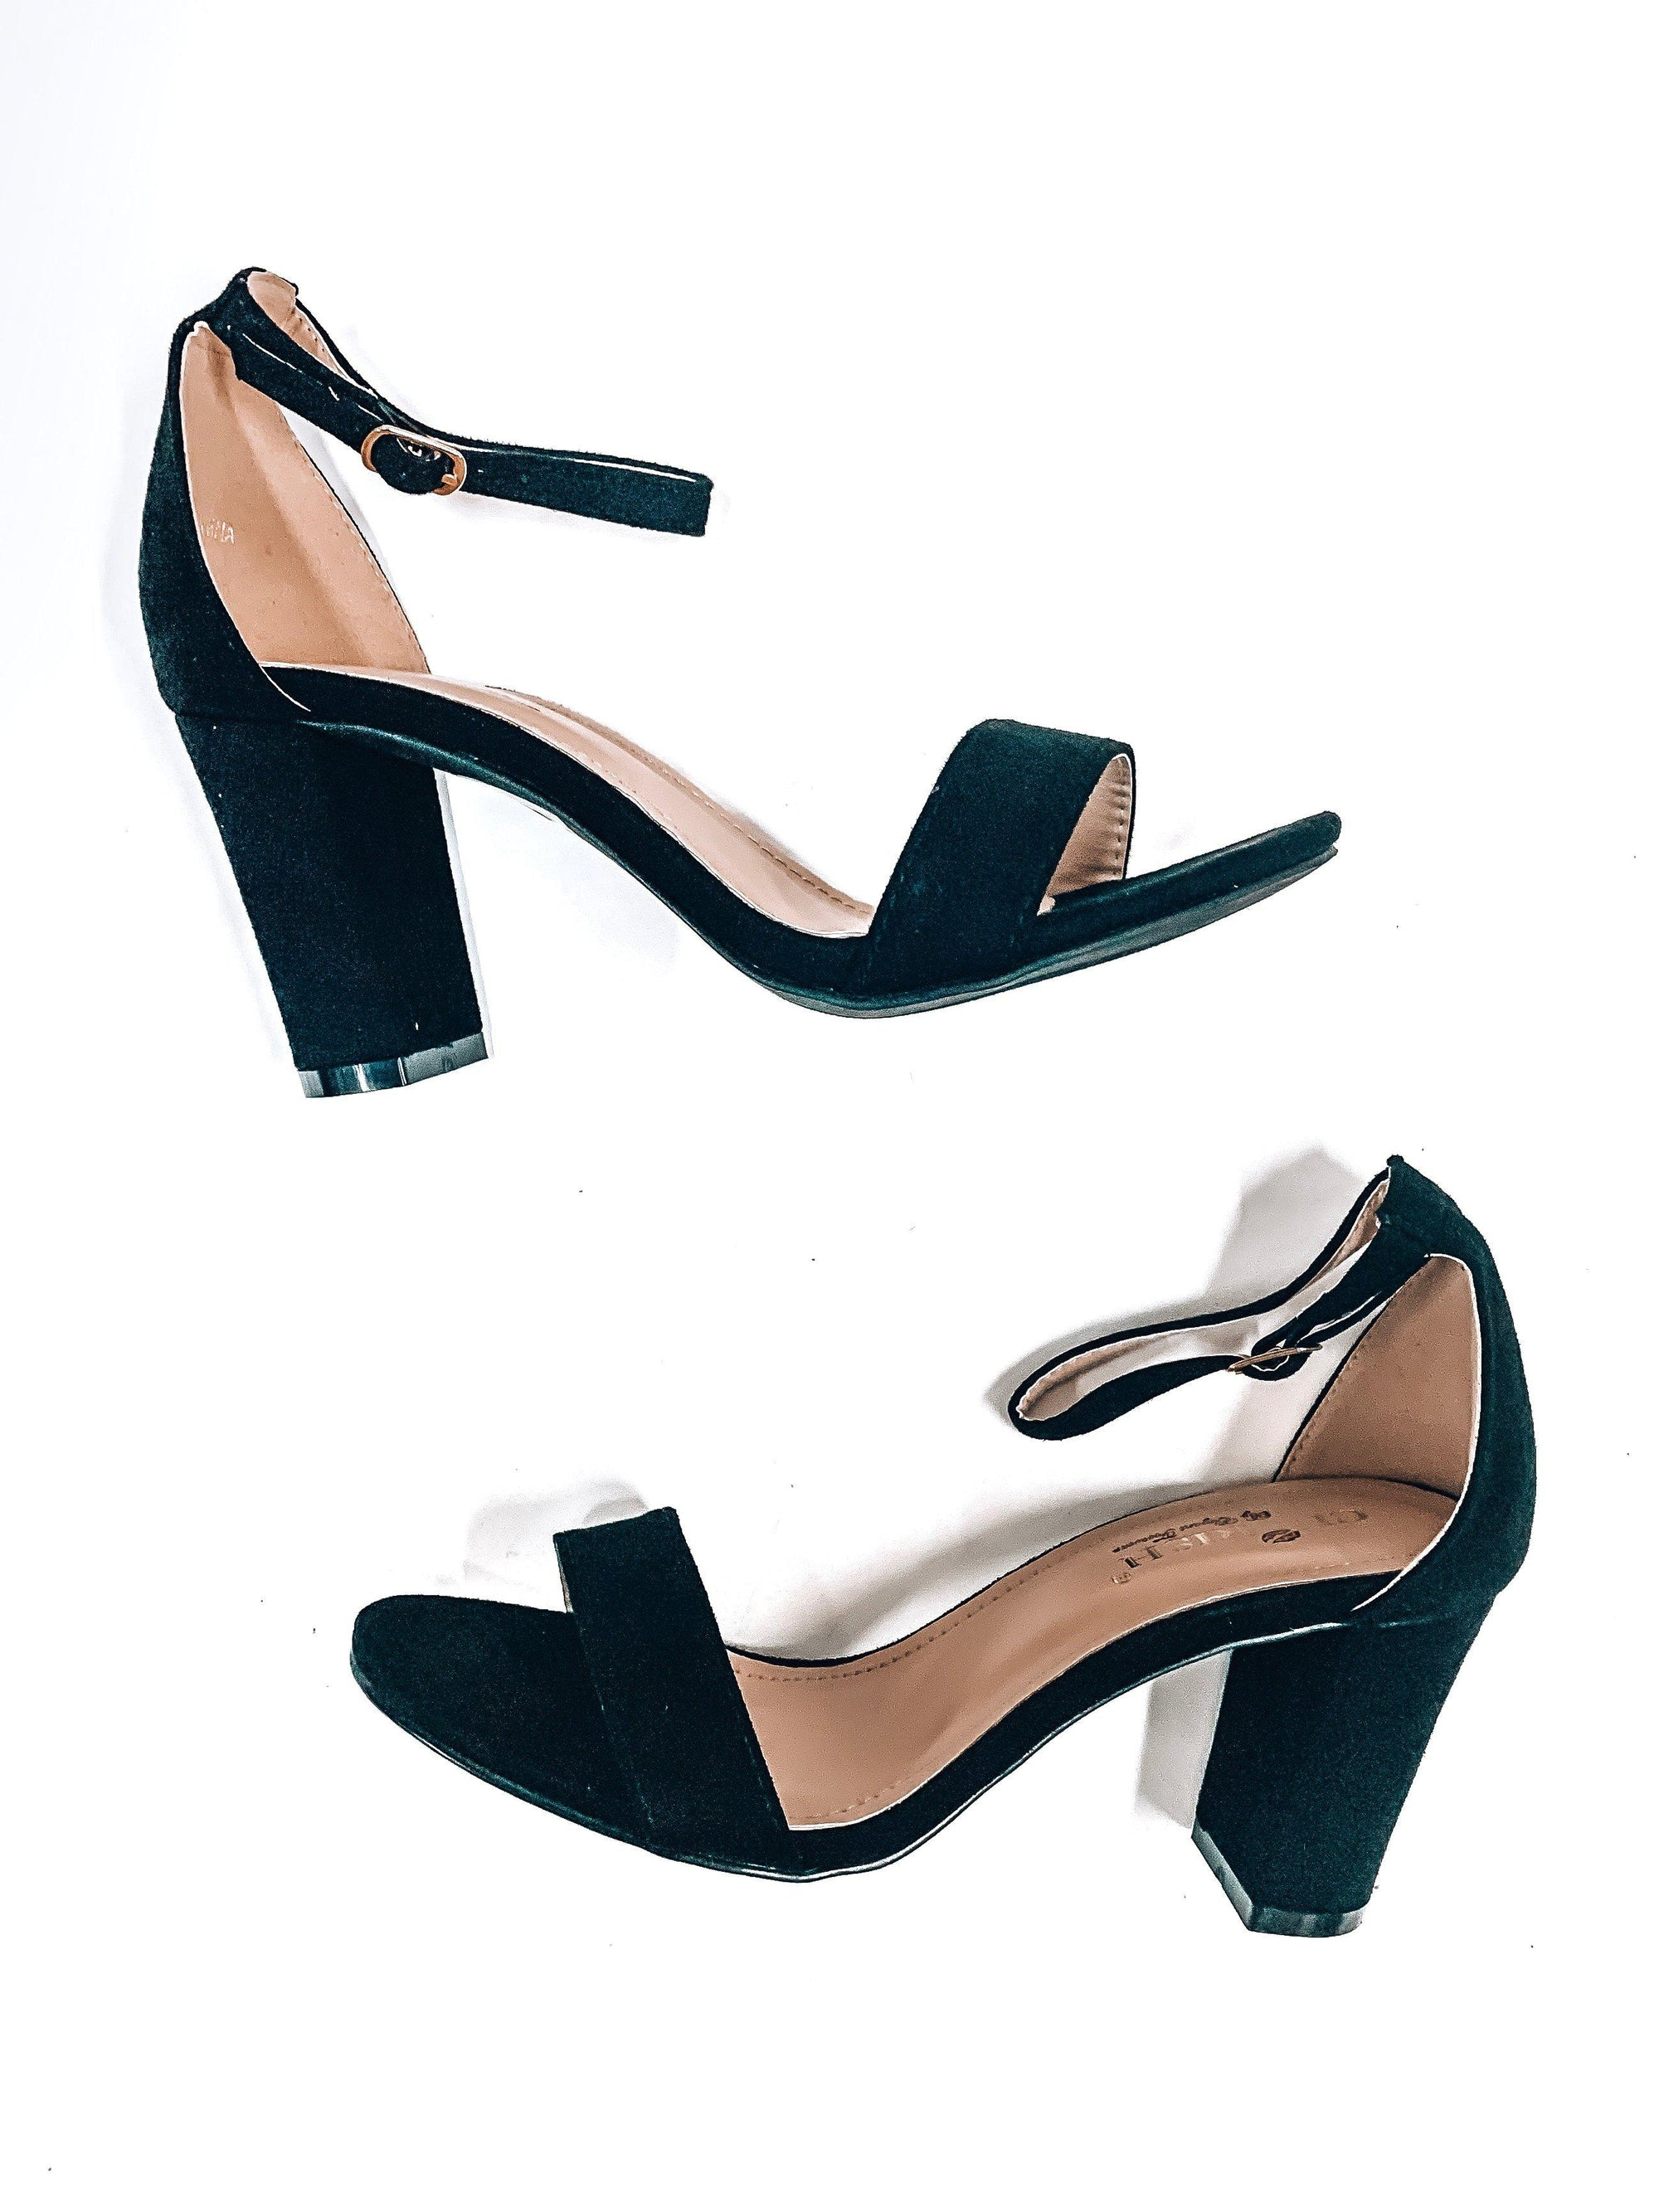 The Janis-Women's SHOES-New Arrivals-Runway Seven - Women's Clothing Boutique